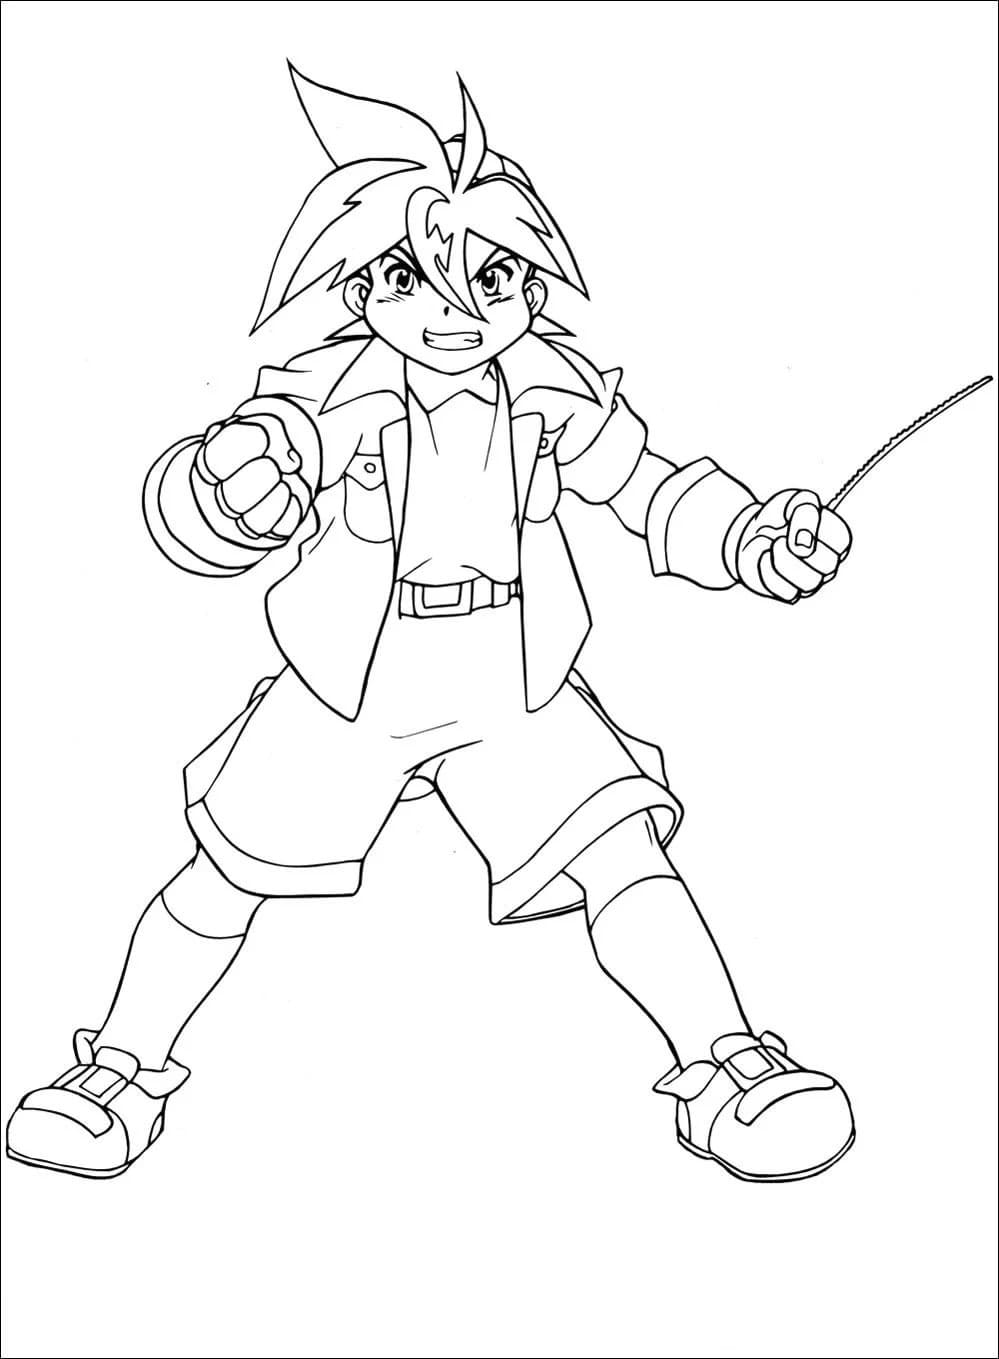 beyblade characters coloring pages beyblade anime coloring pages for kids printable free coloring characters beyblade pages